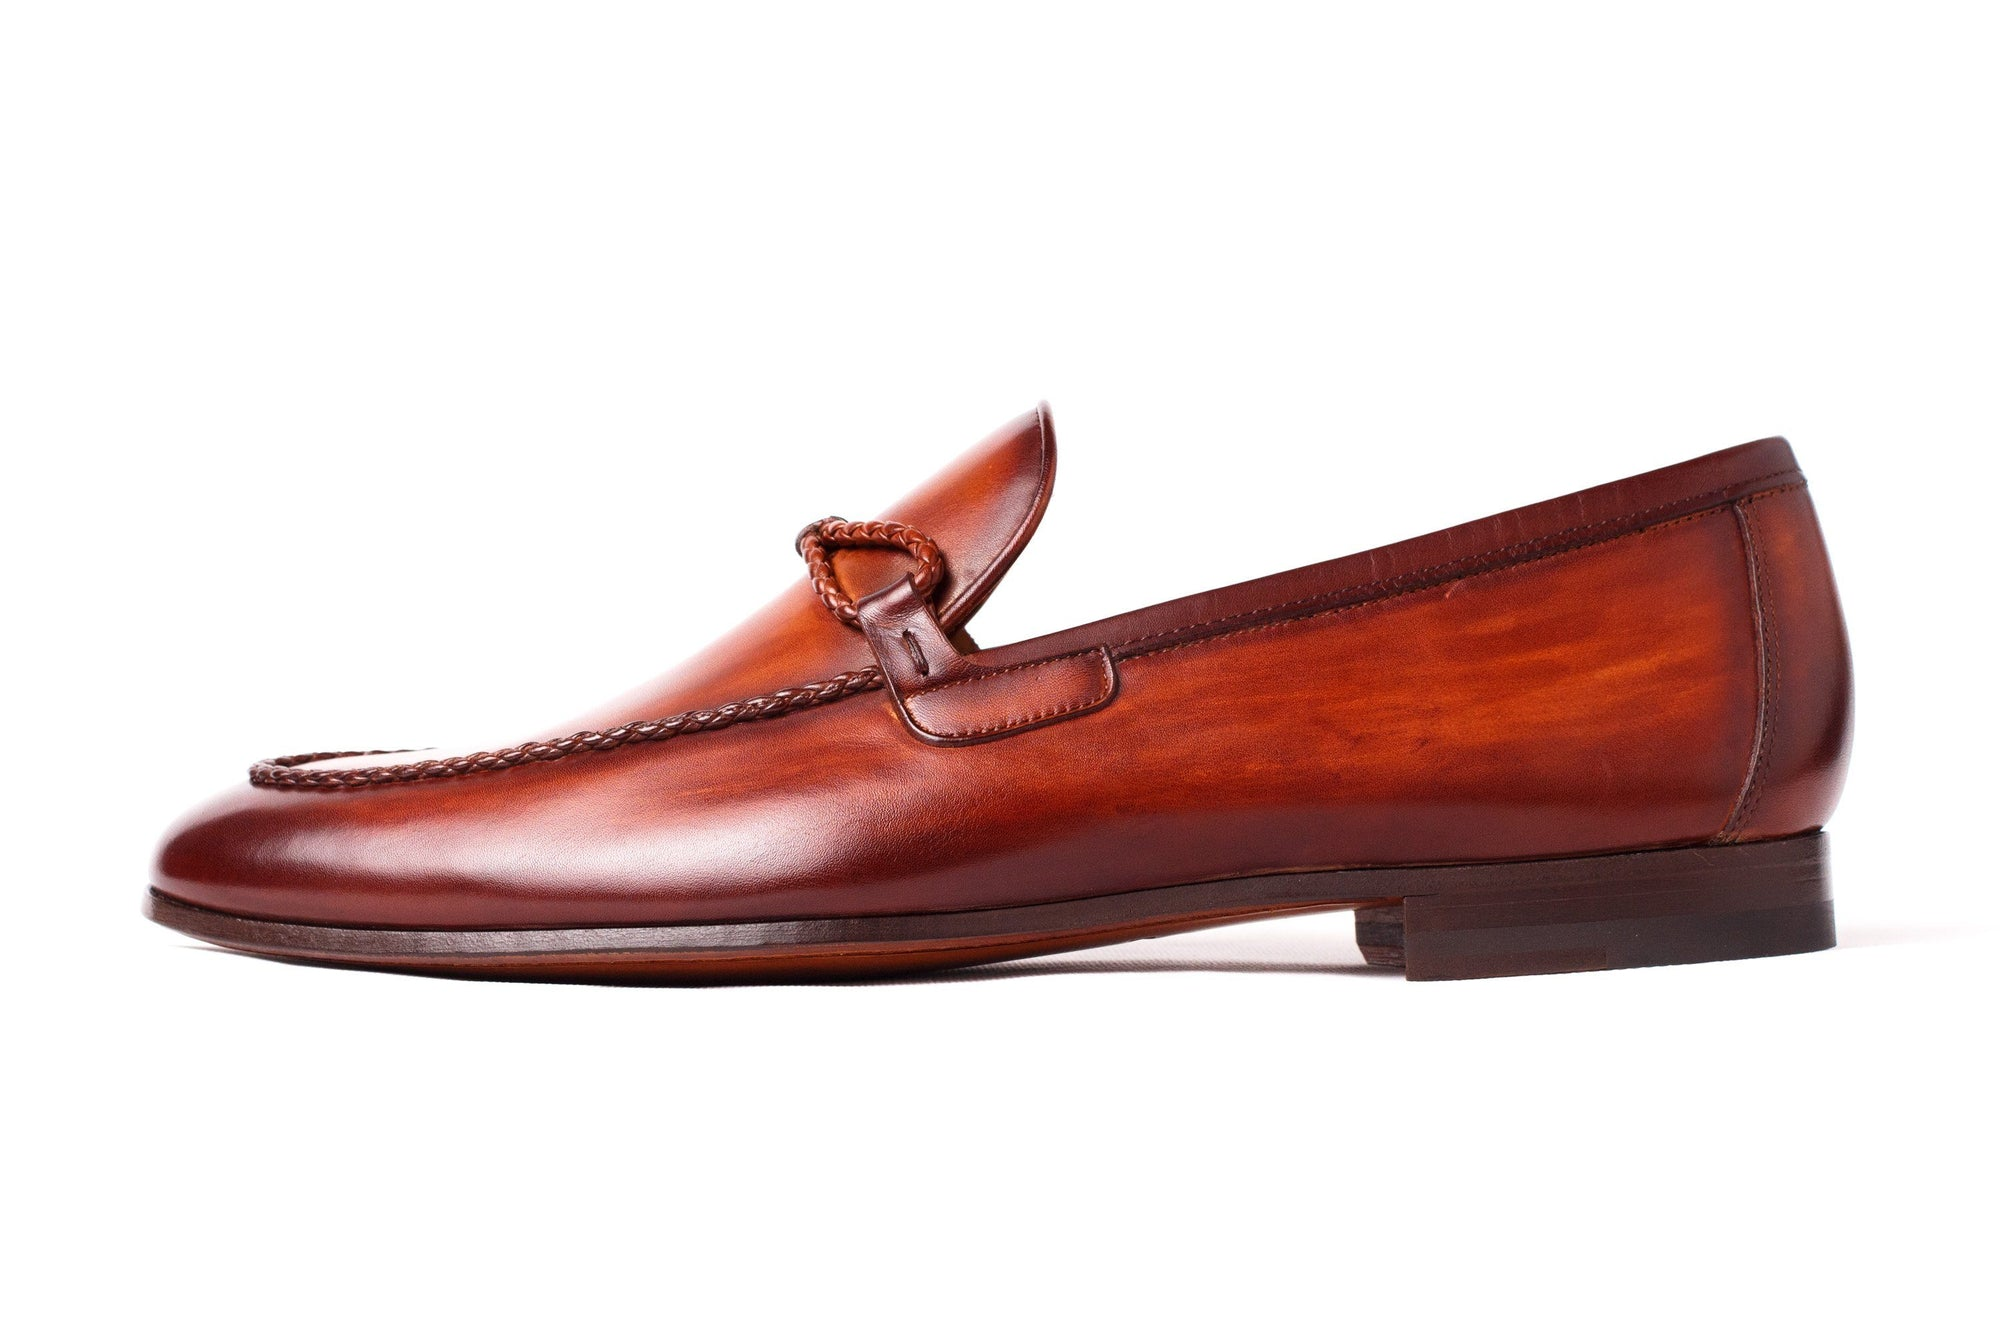 Magnanni - Trencilla loafer - Cognac - Ninostyle